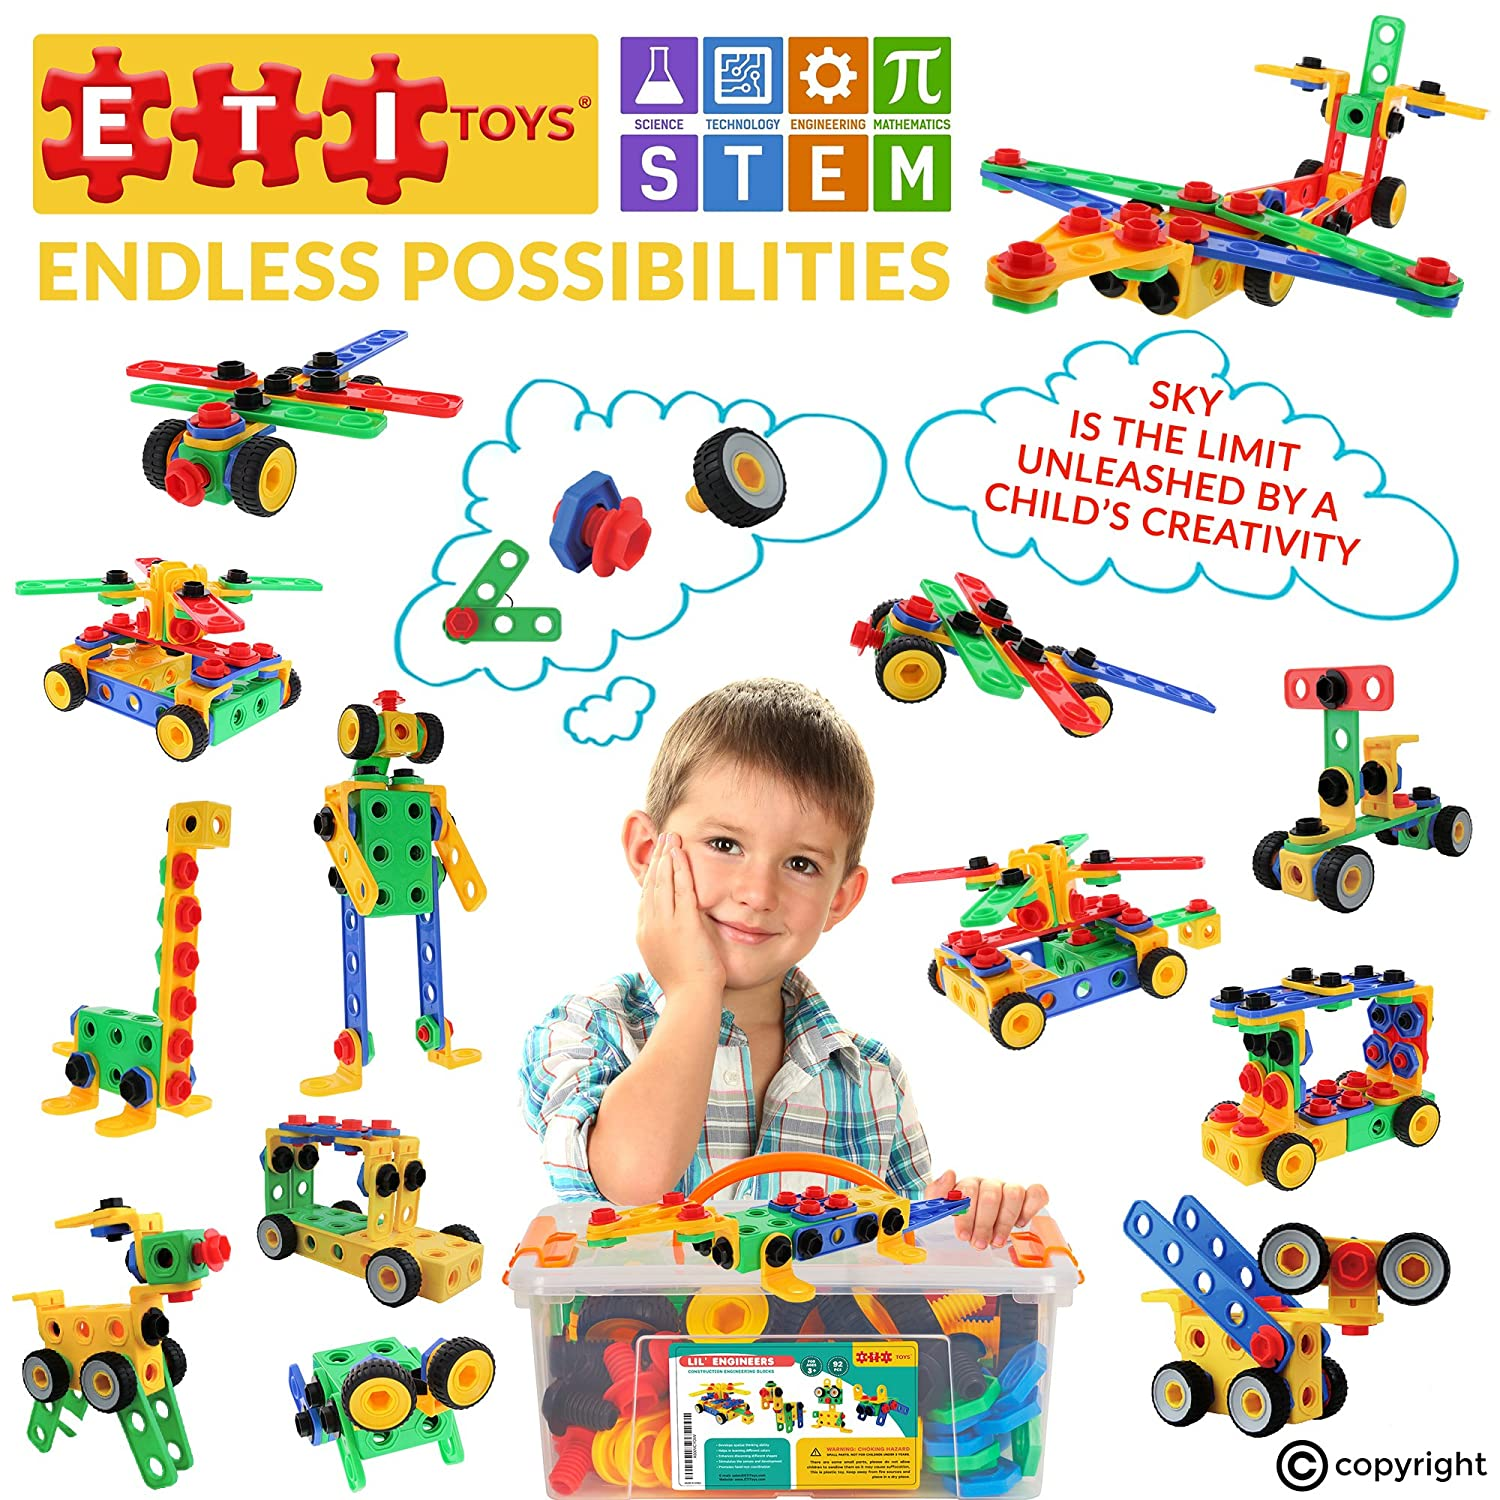 ETI Toys STEM Learning Original 90 Piece Educational Construction